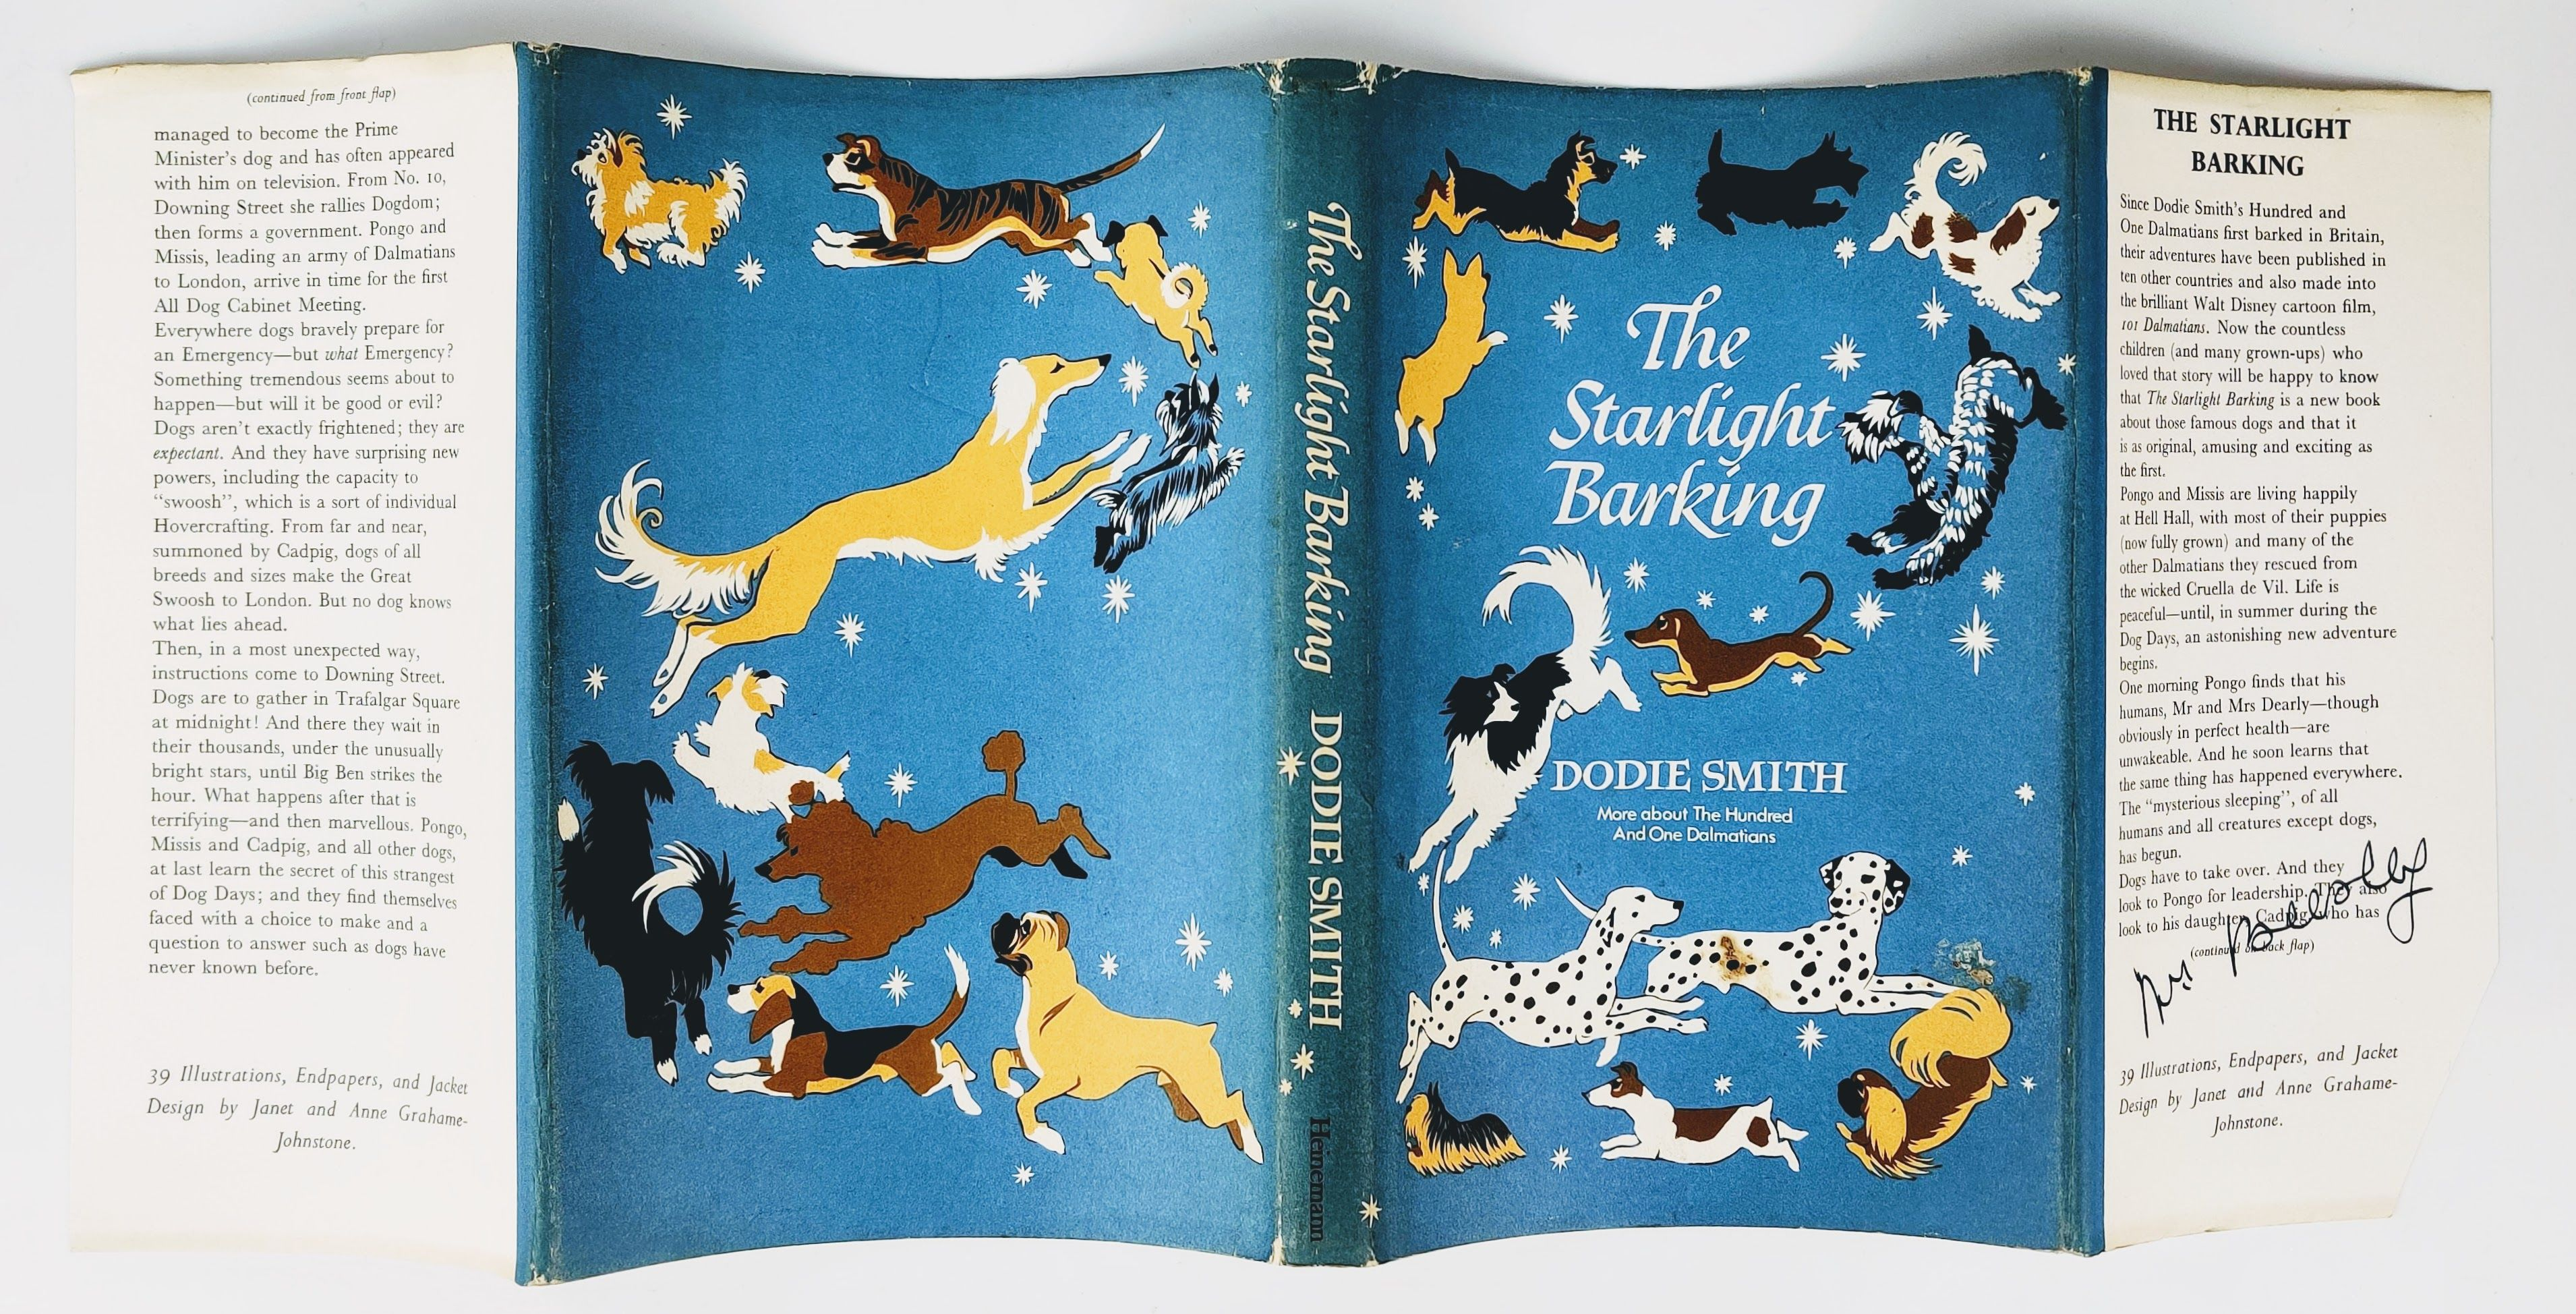 The Starlight Barking: More About The Hundred and One Dalmatians - Signed, Inscribed and Dated by the Author (photo 2)